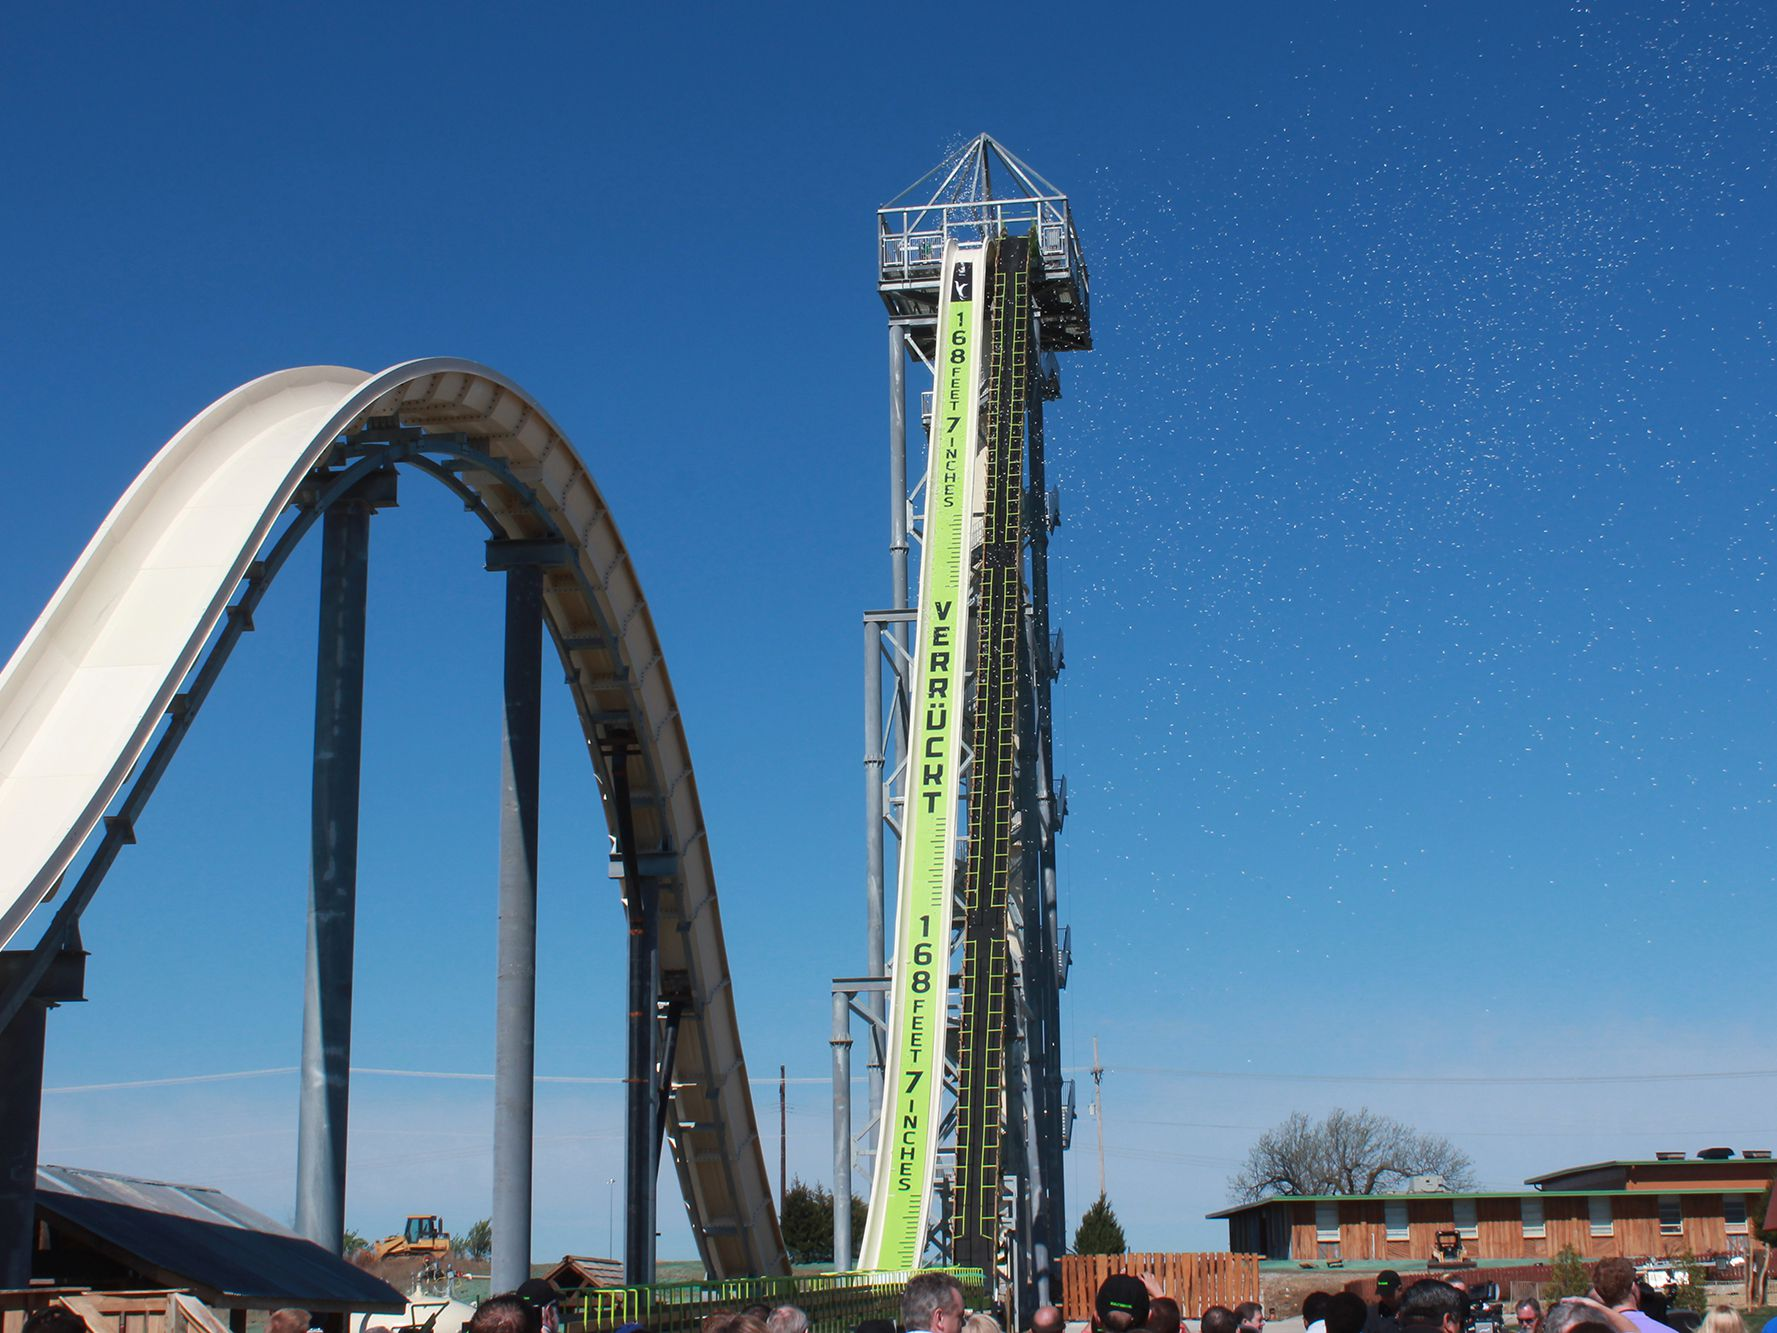 Verruckt - World's Tallest Water Slide Had Tragedy